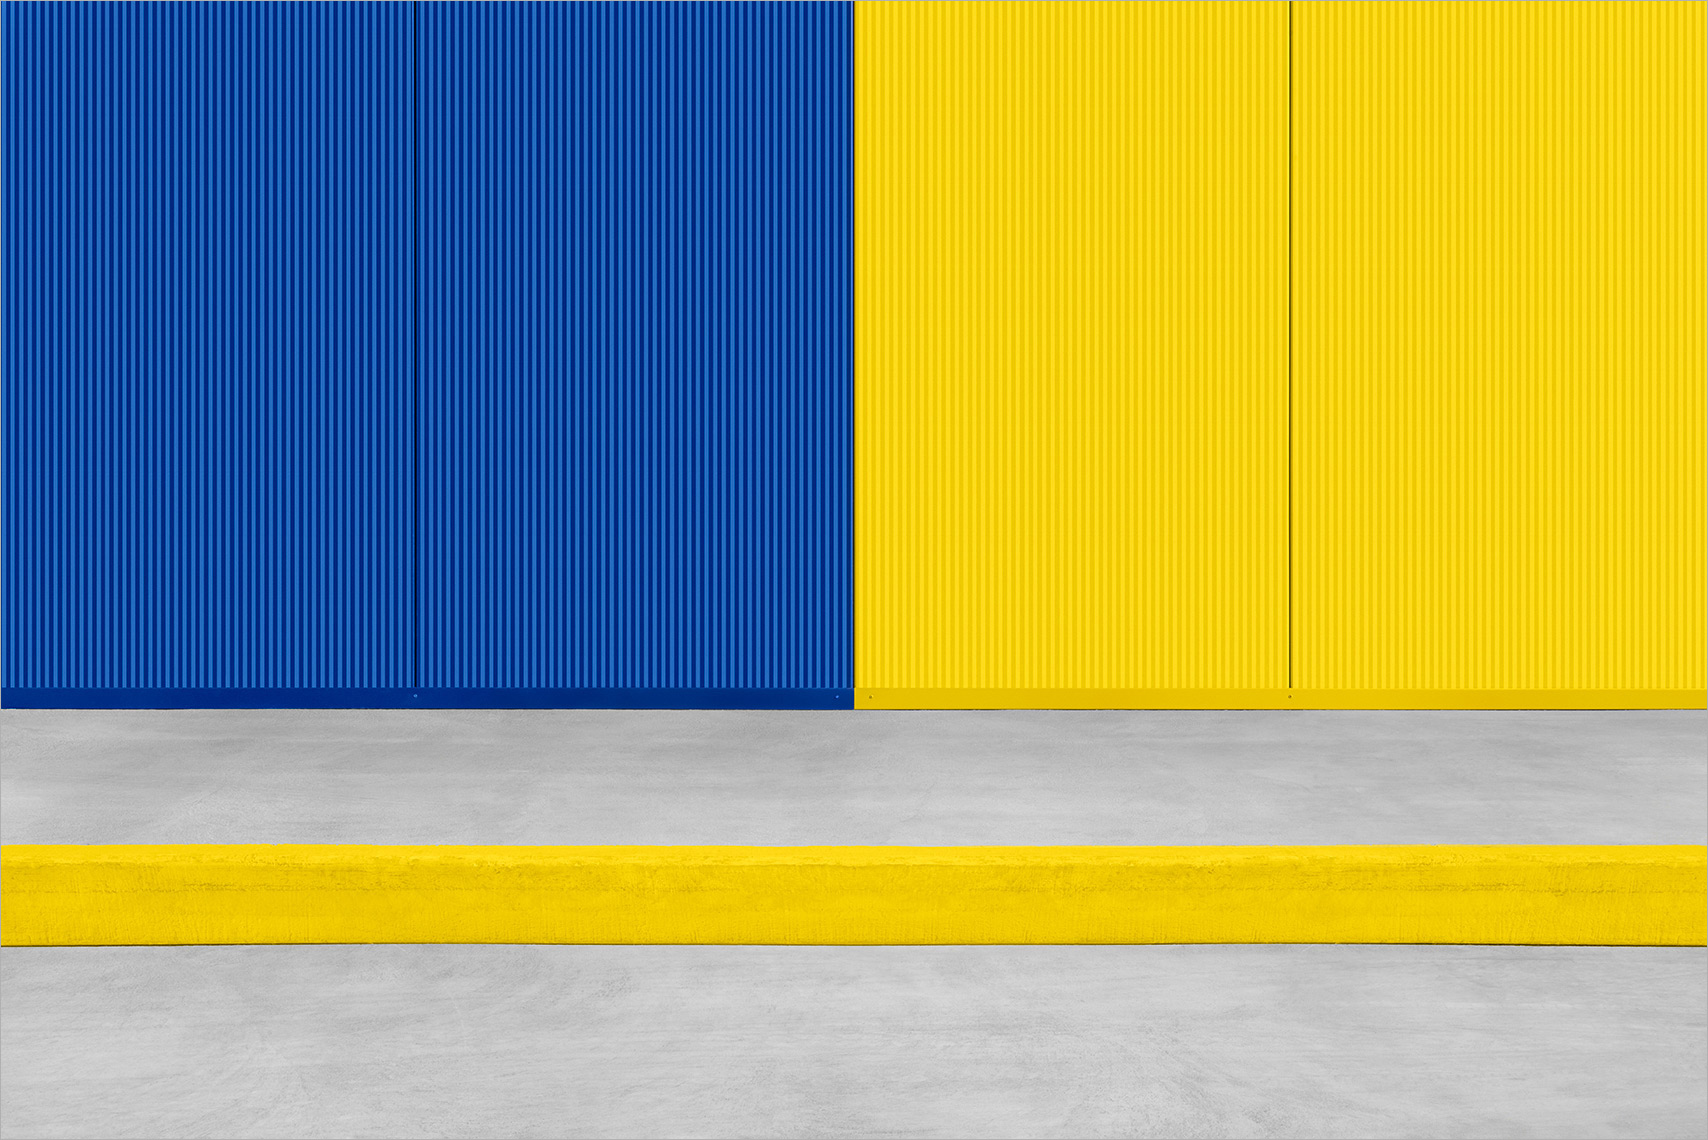 Zoe Wetherall / Architecture / Blue and Yellow